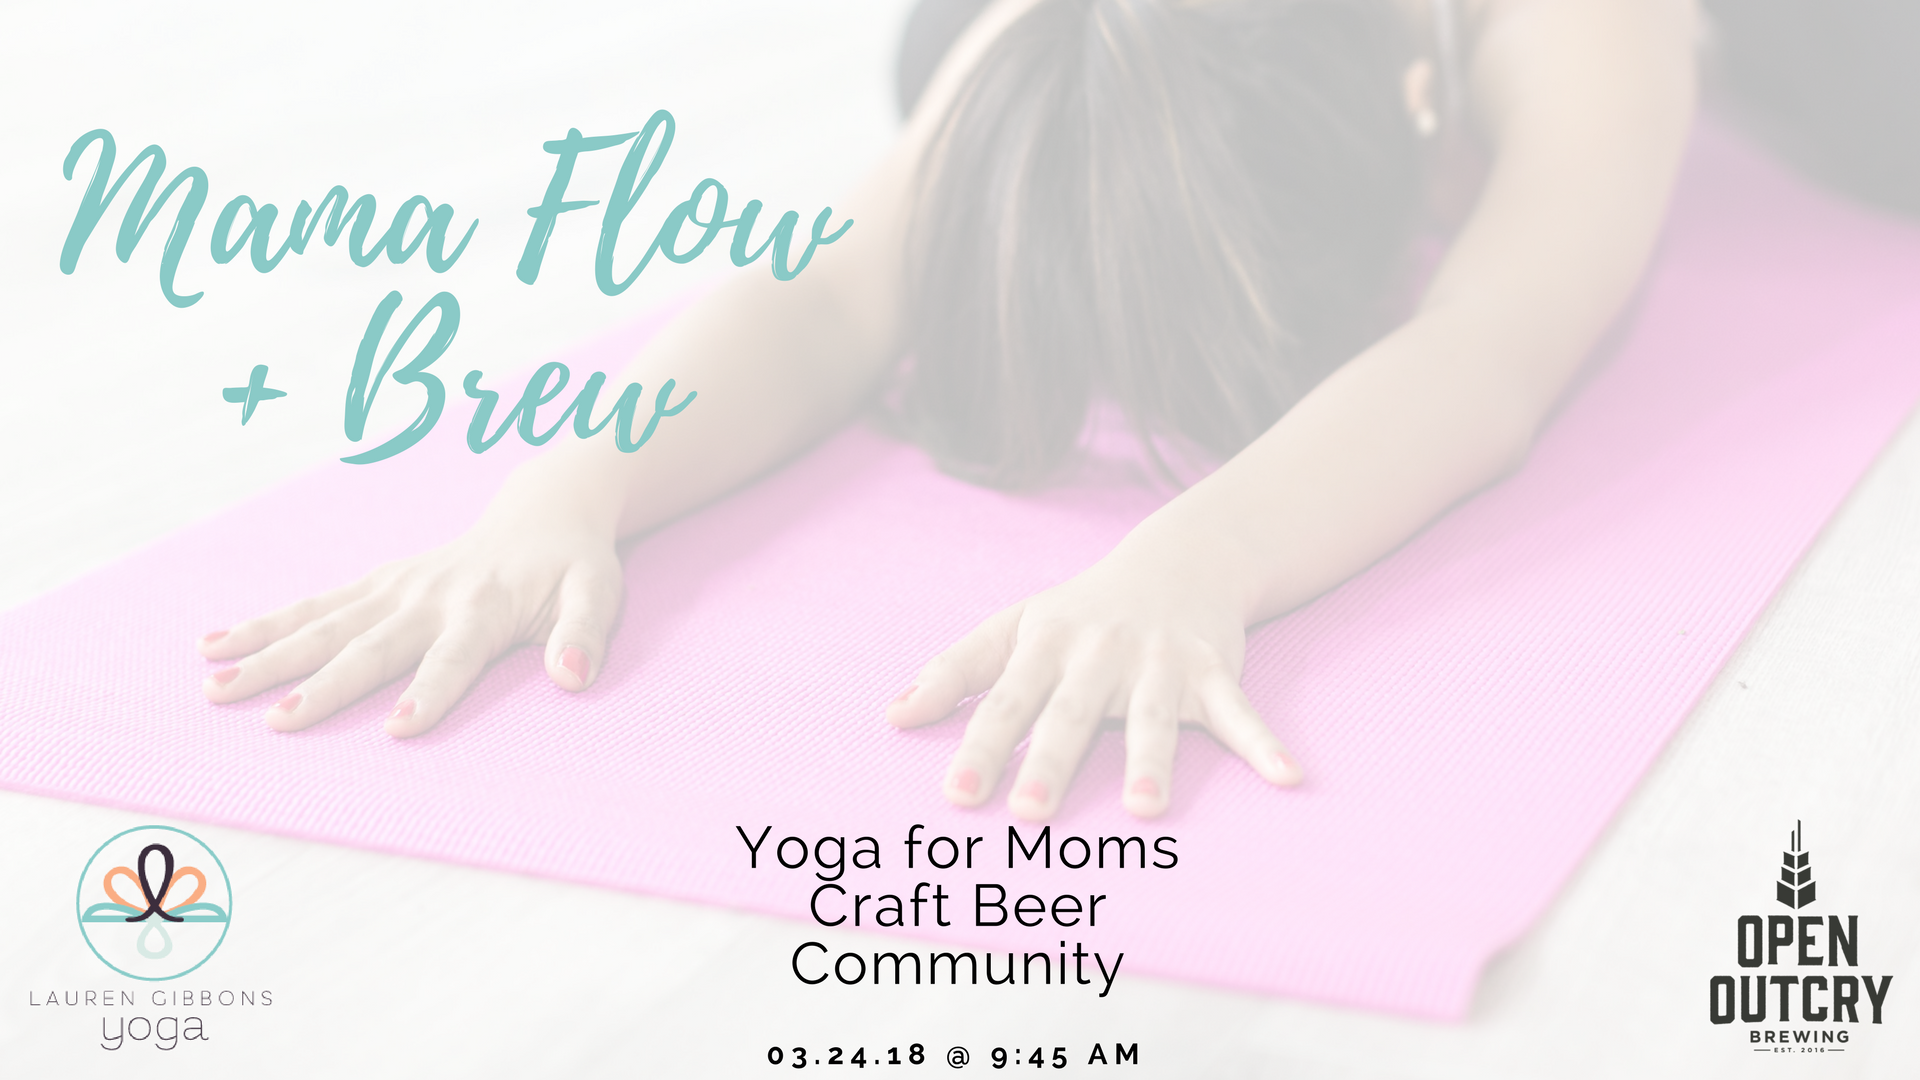 Yoga for Moms. Craft Beer. Community. Open Outcry Brewing Company in Beverly, Chicago.